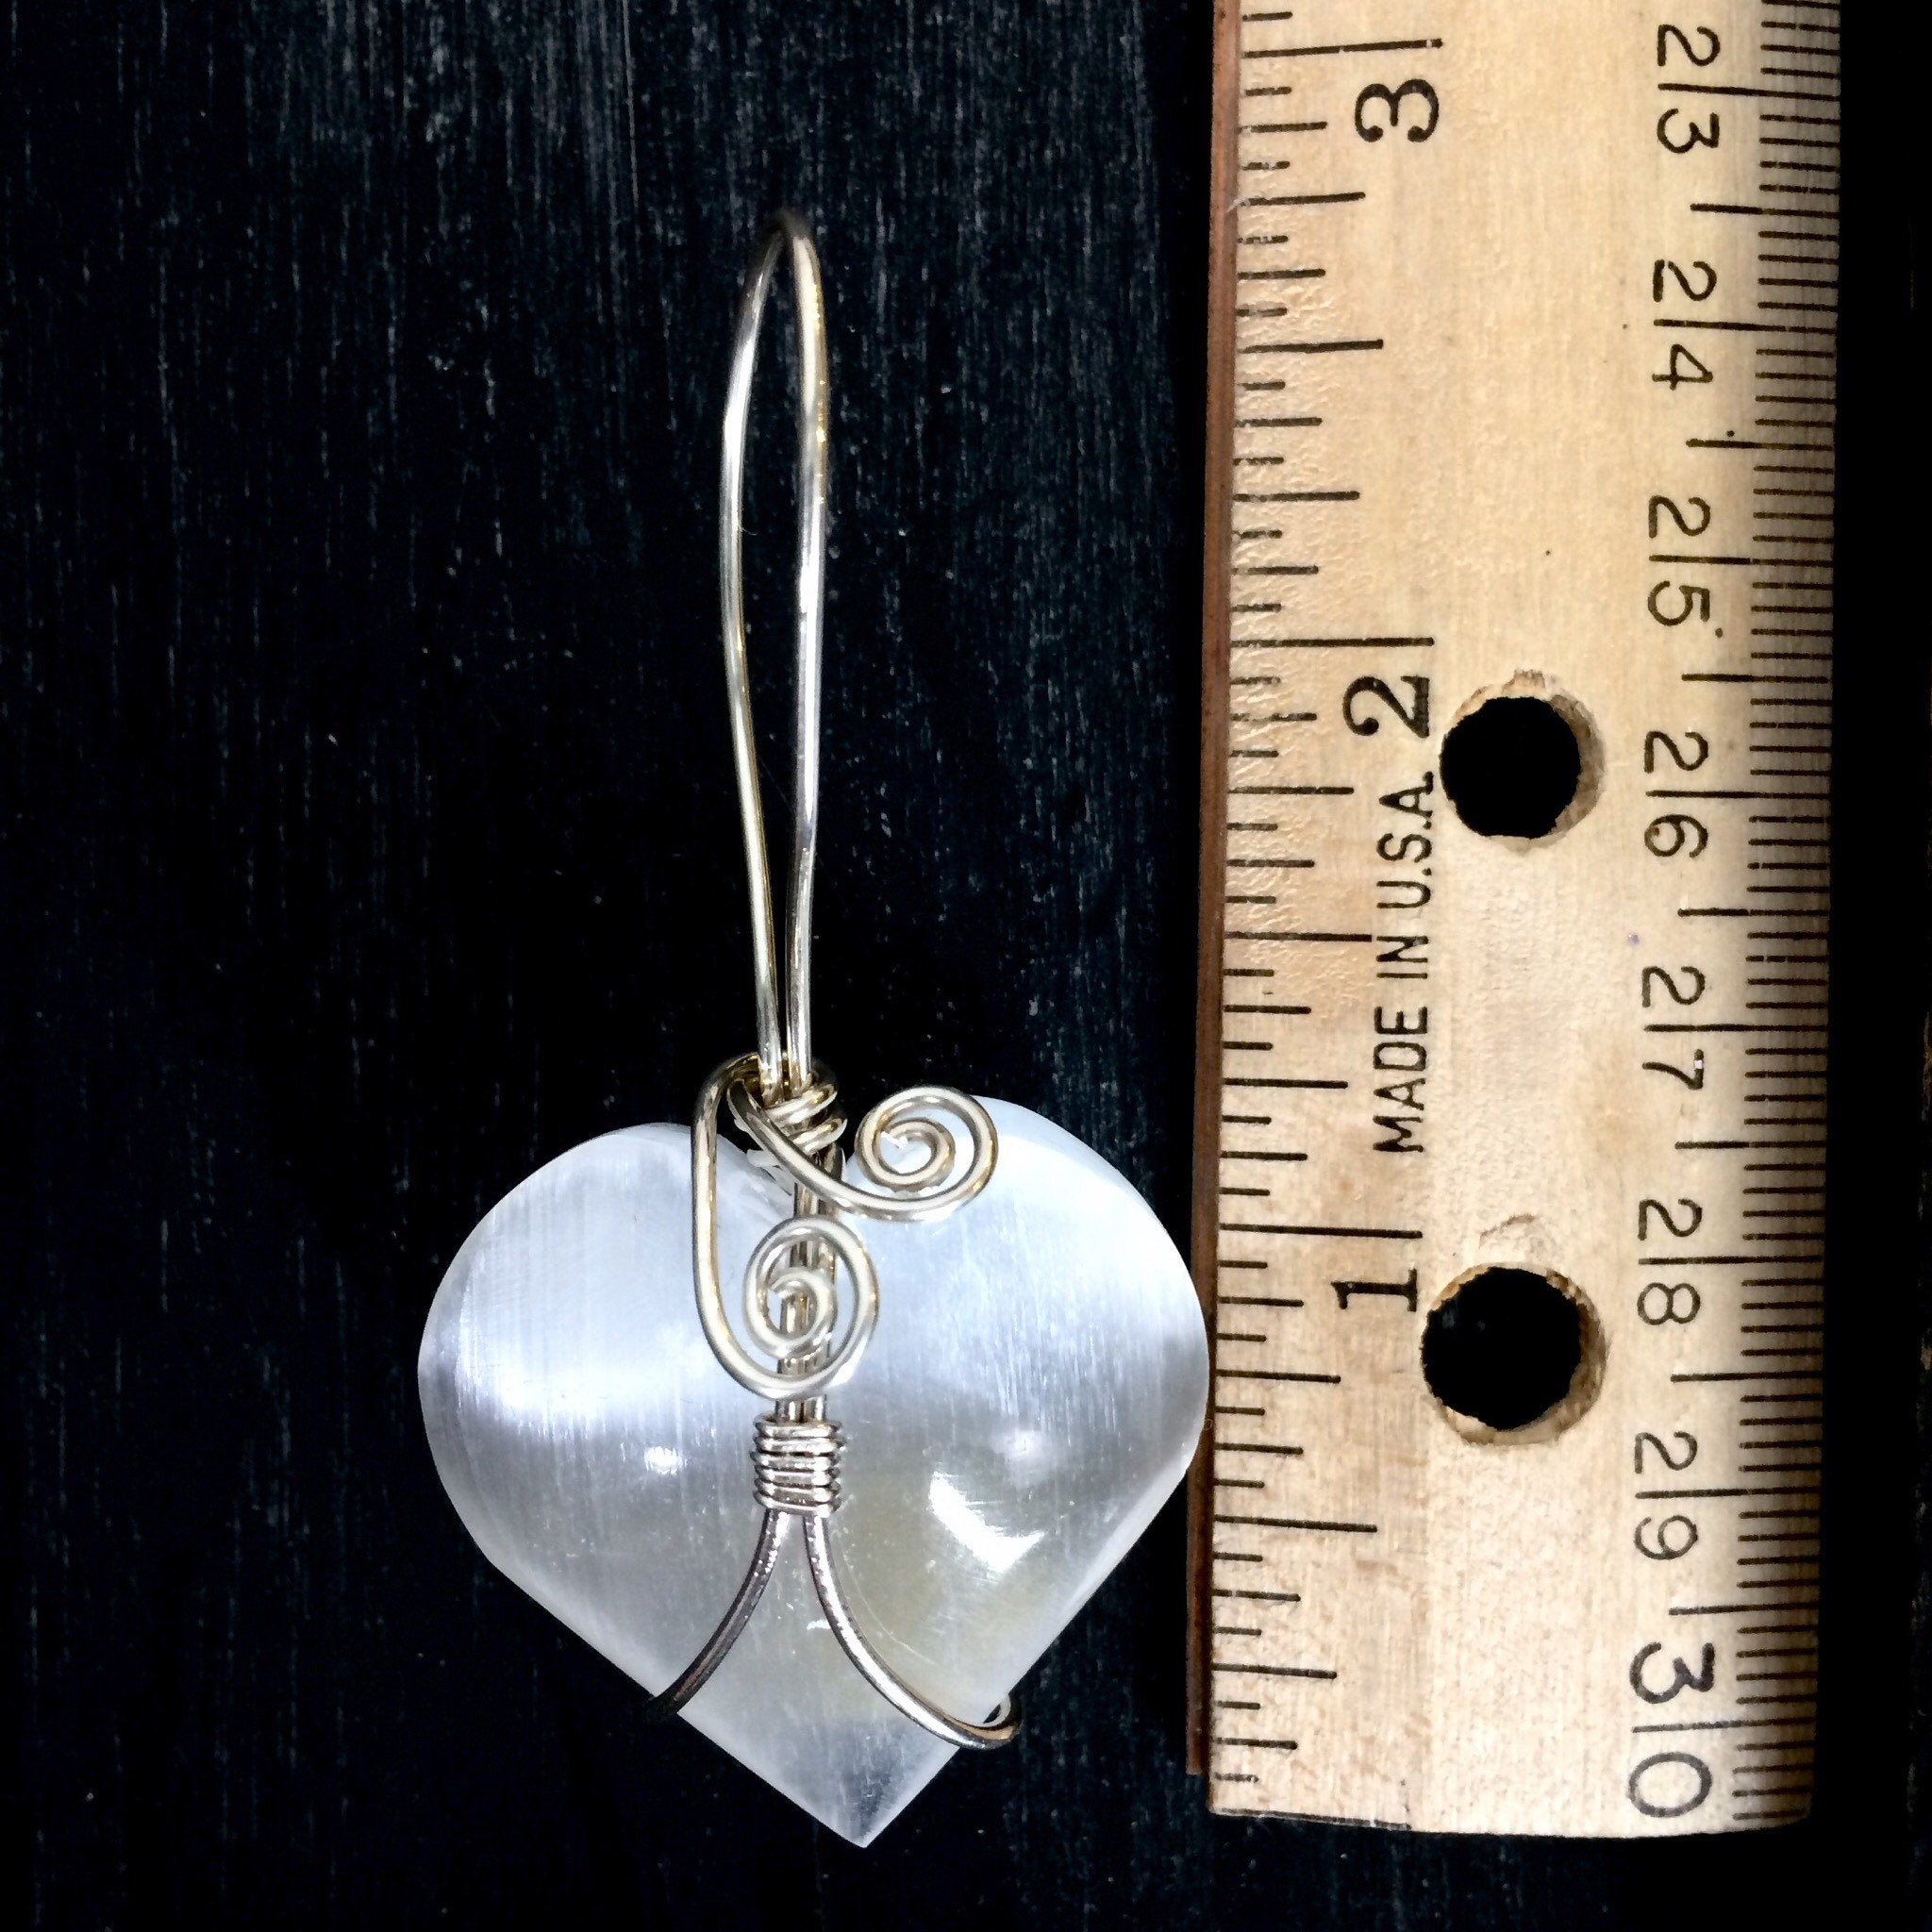 Sterling Silver Filled White Selenite Crystal Heart Pendant Necklace 2020 Love n Light Collection - claritycove.com